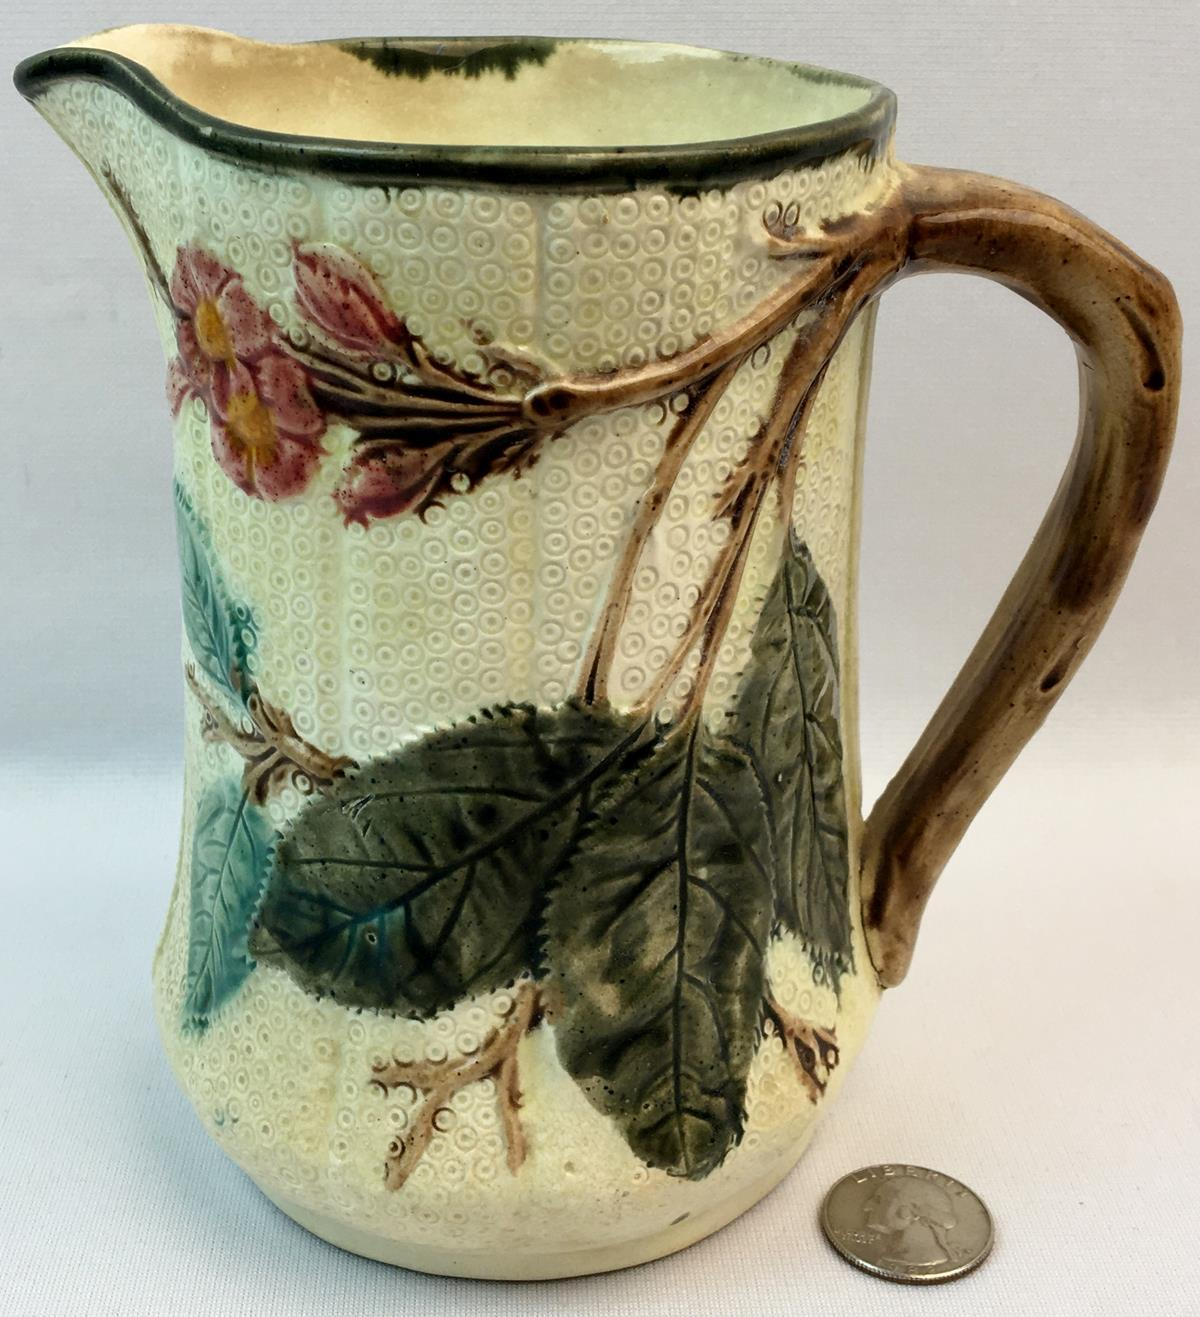 Antique 19th Century English Majolica Pitcher w/ Tree Branch Handle, Leaves and Pink Flowers